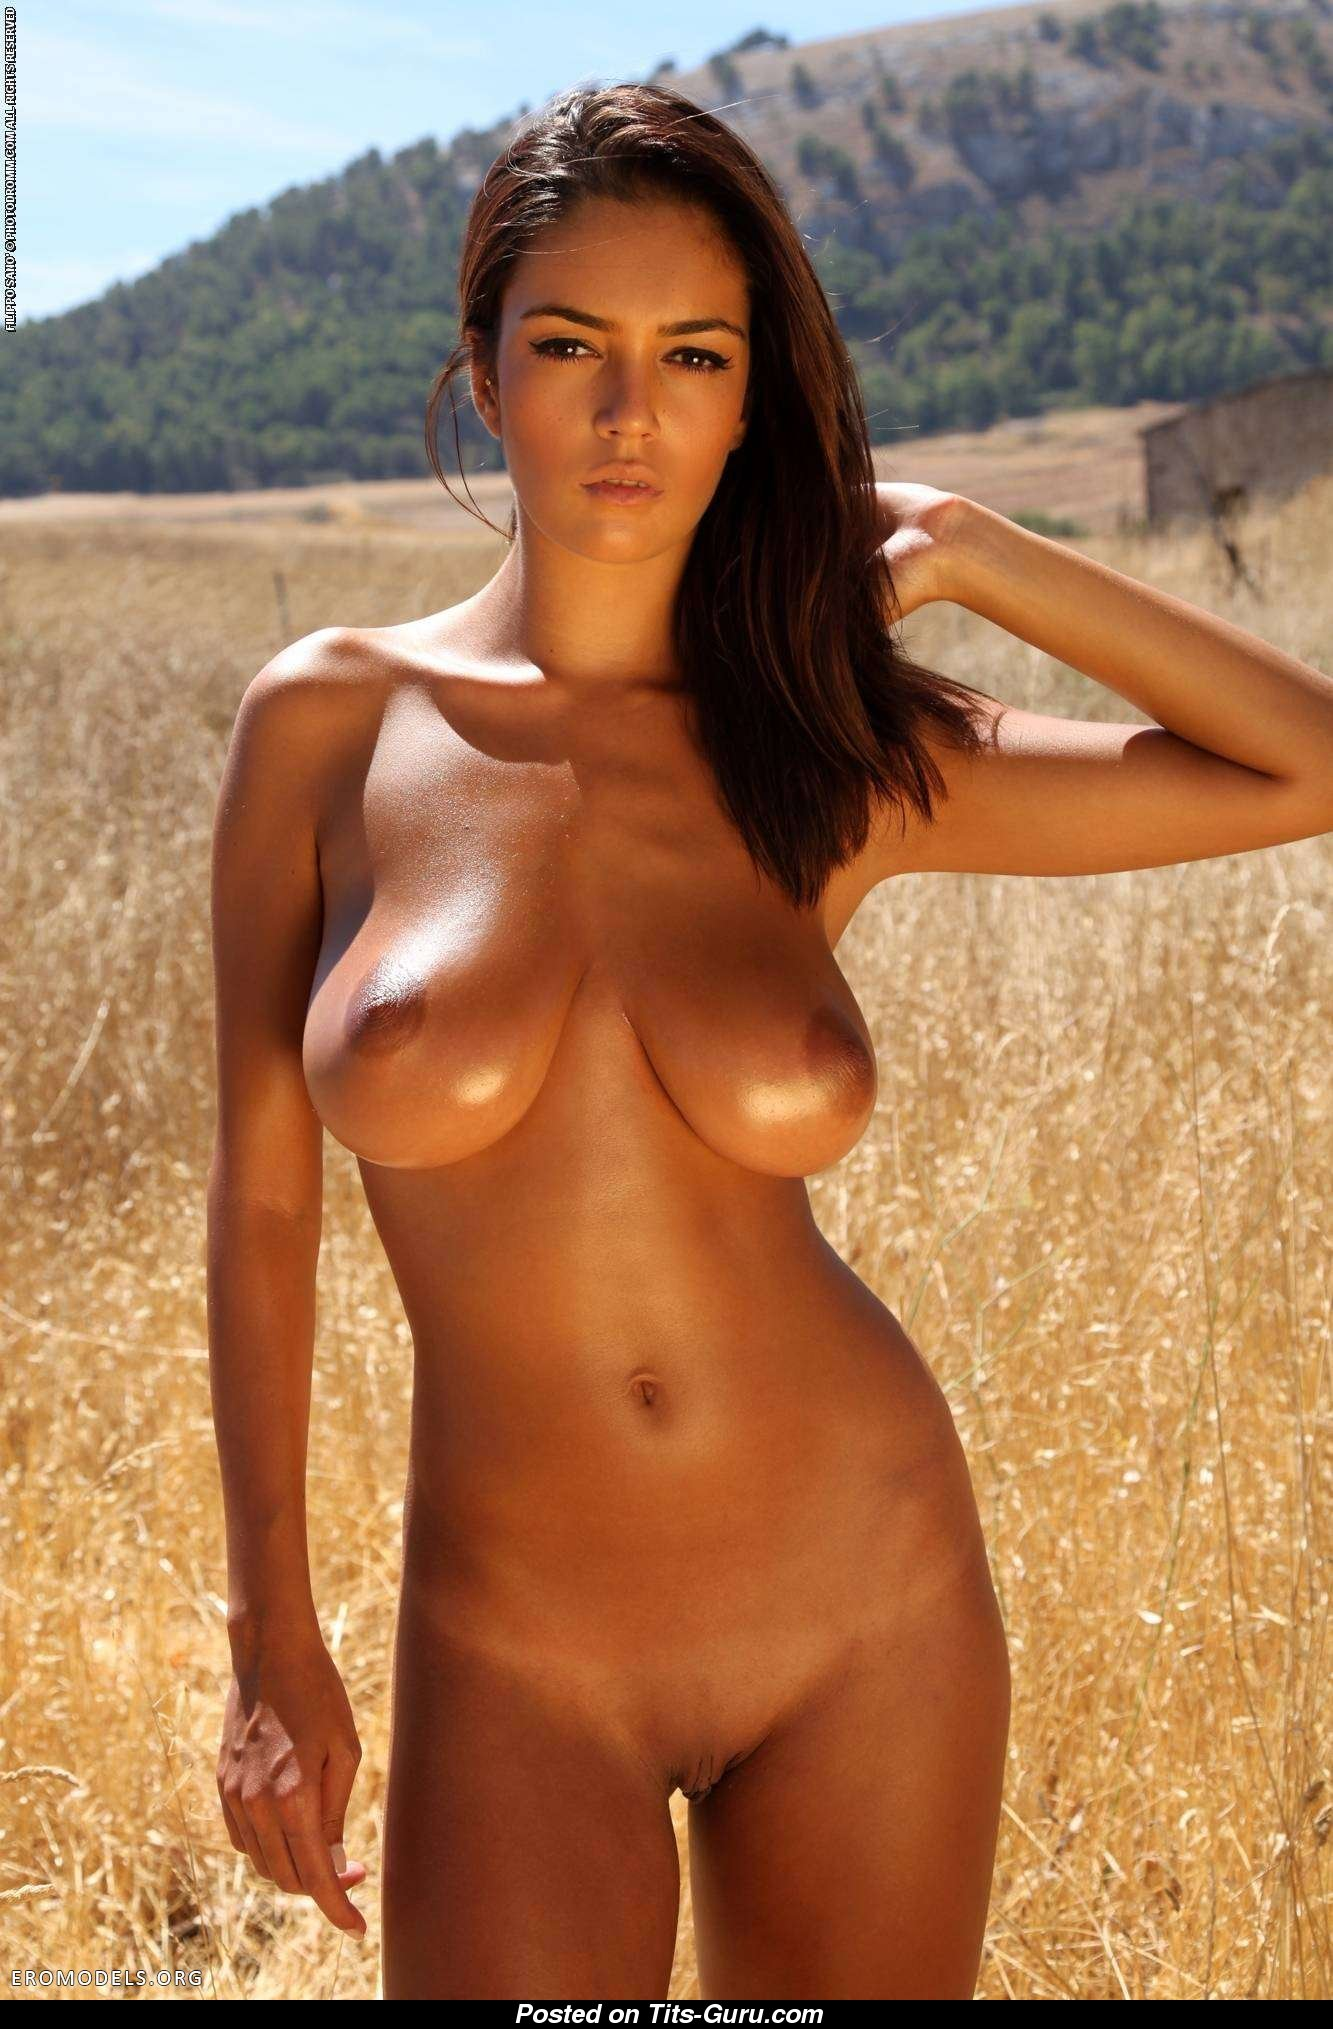 Ela savanas nude body in mind you head